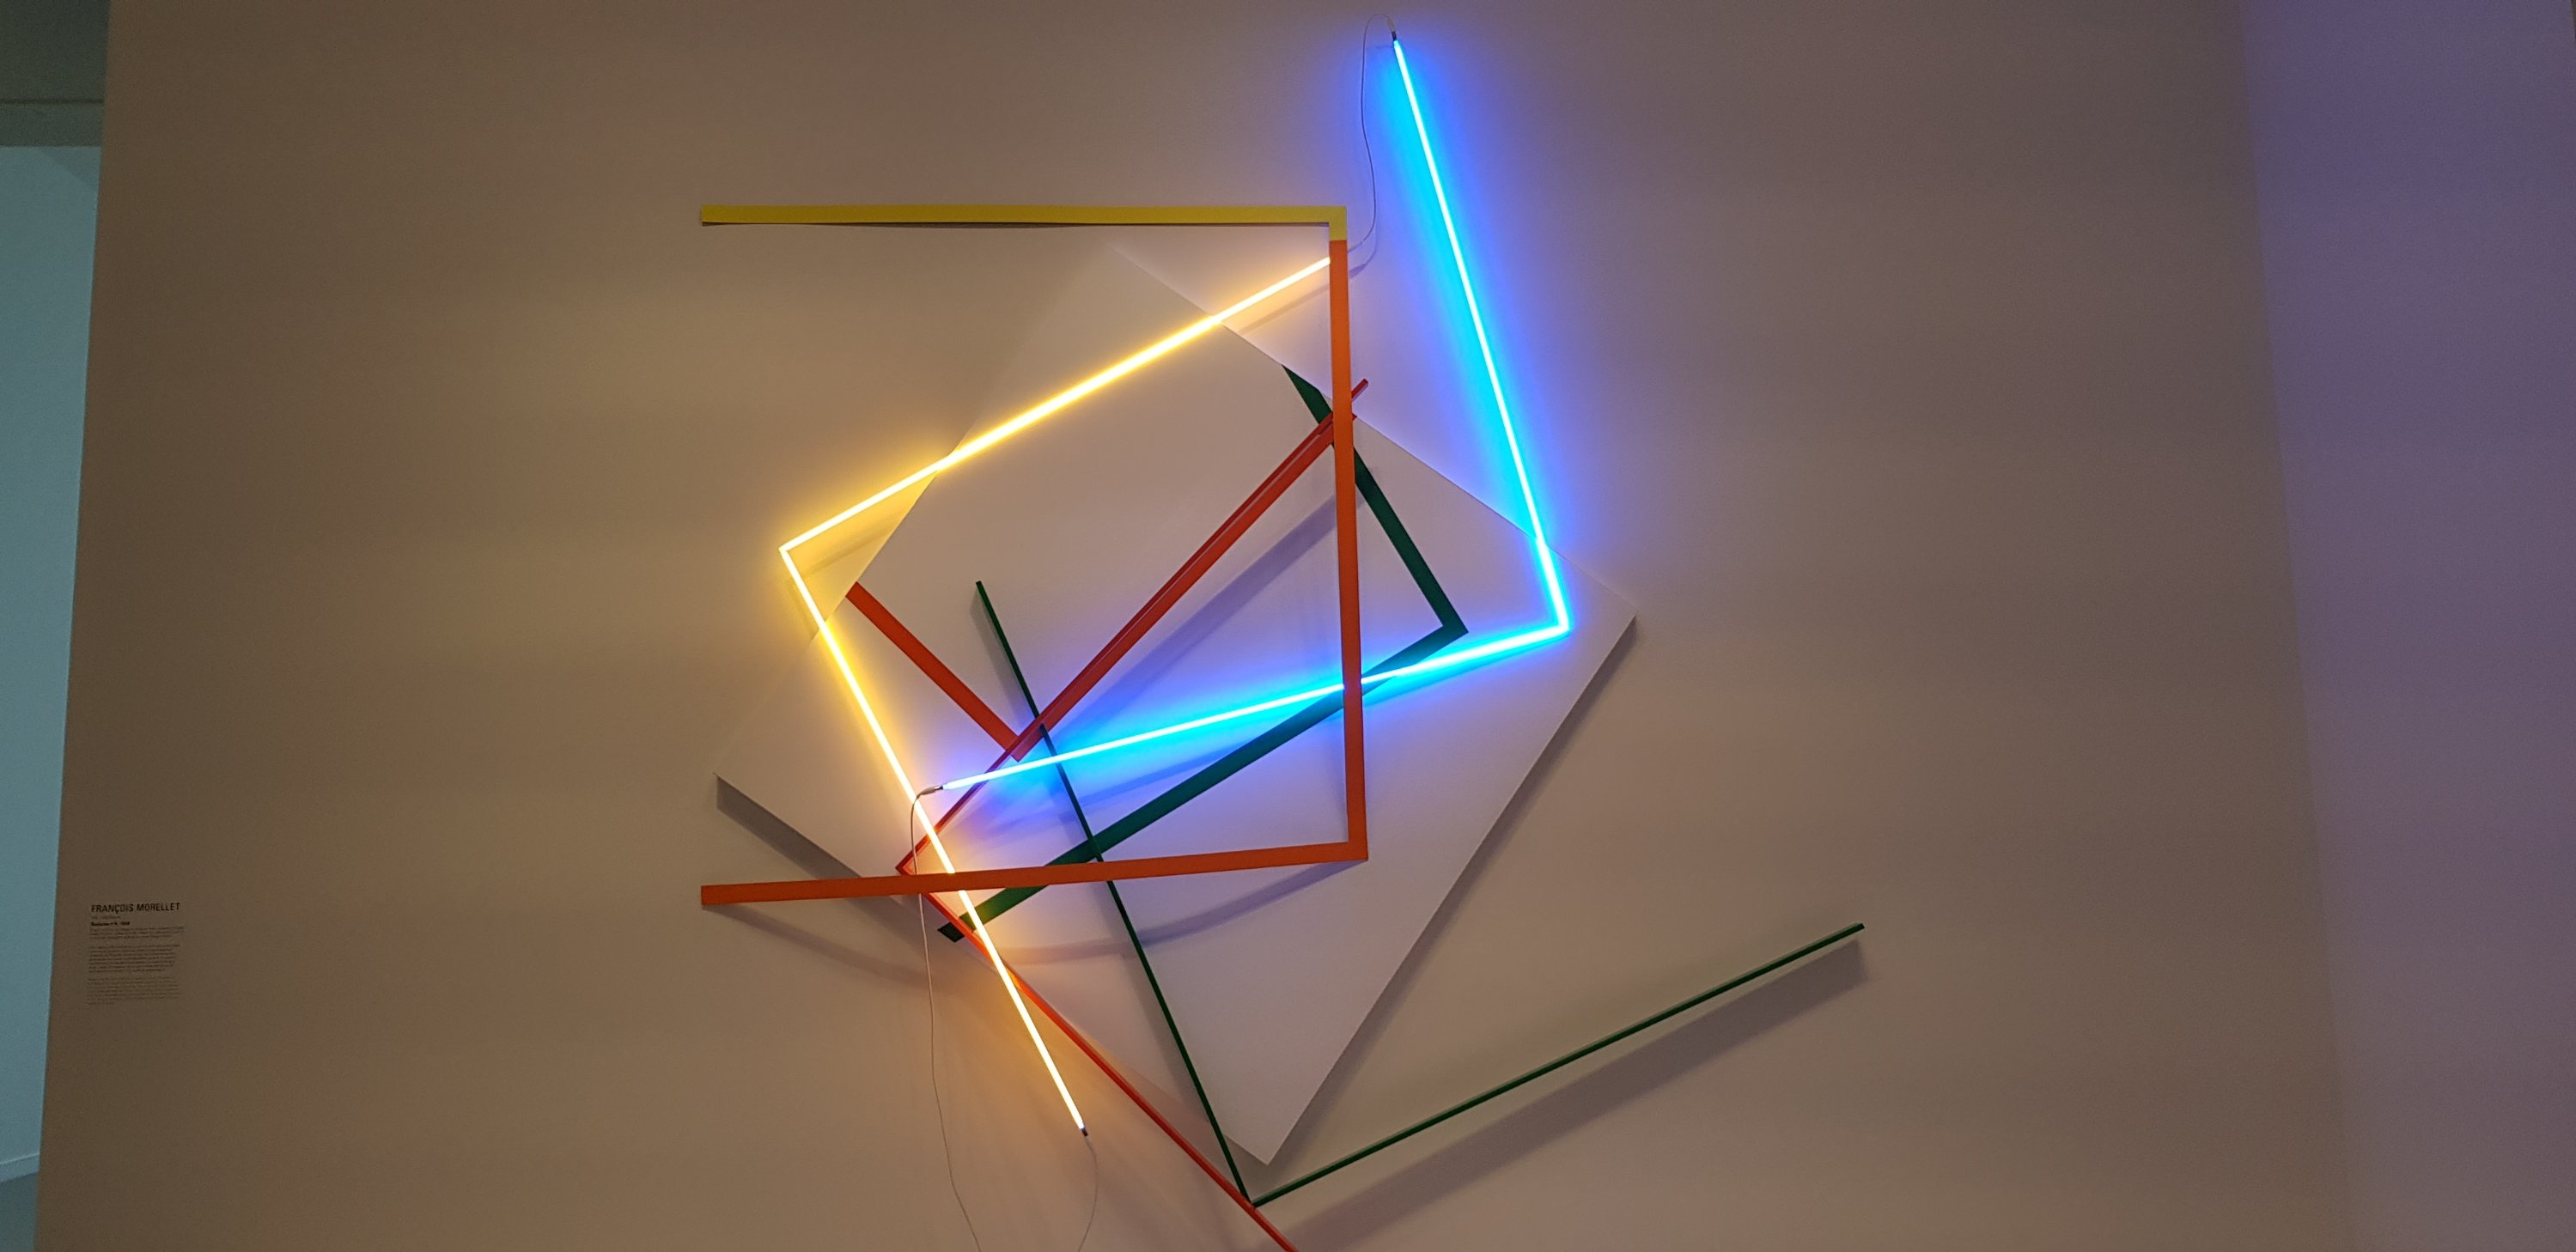 Light sculpture from the second exhibition at the Fondation Louis Vuitton